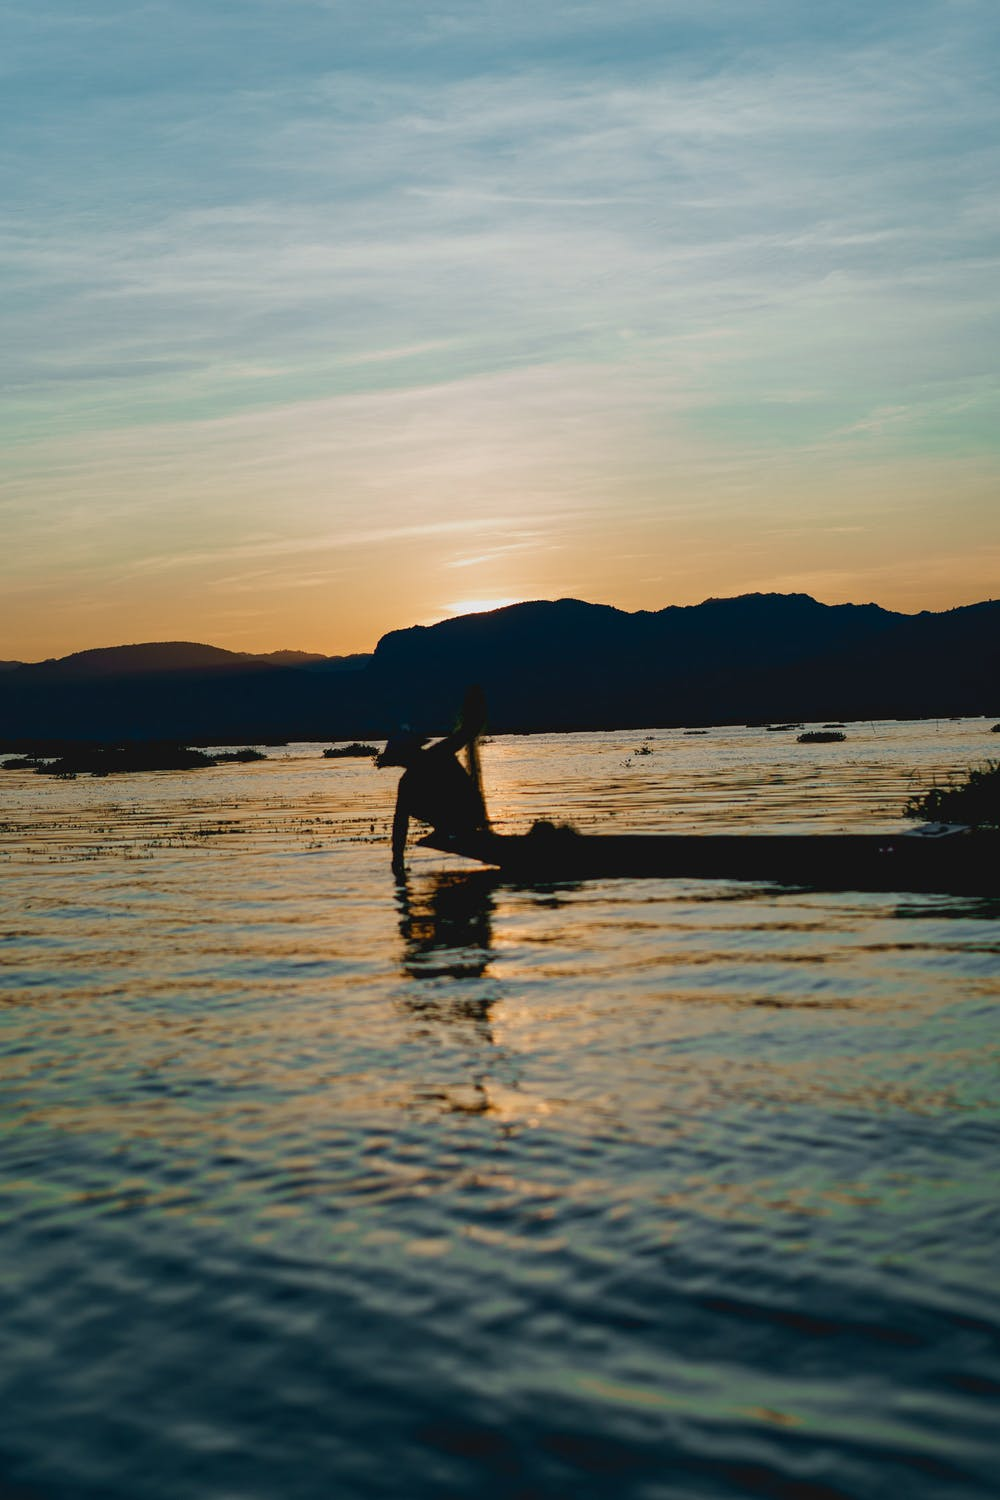 Burmese fisherman padding in his boat at sunset with mountains in the scenery at Inle Lake Myanmar